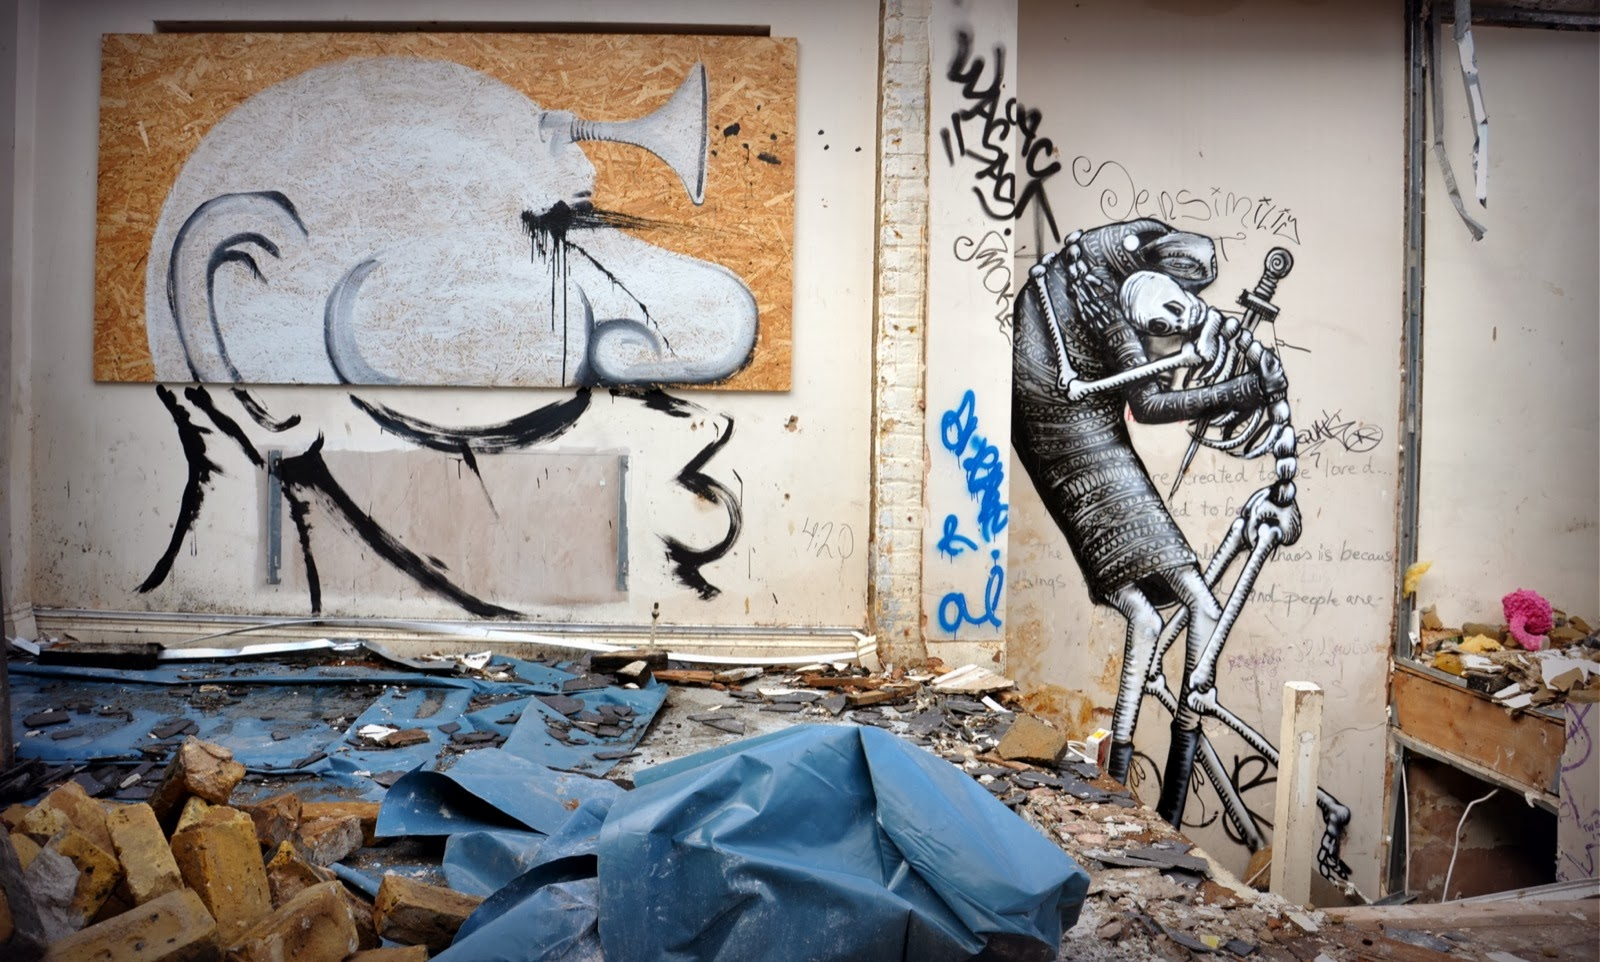 Phlegm, RUN and Christiaan Nagel paint for Last Breath II in Bethnal Green, London. 1